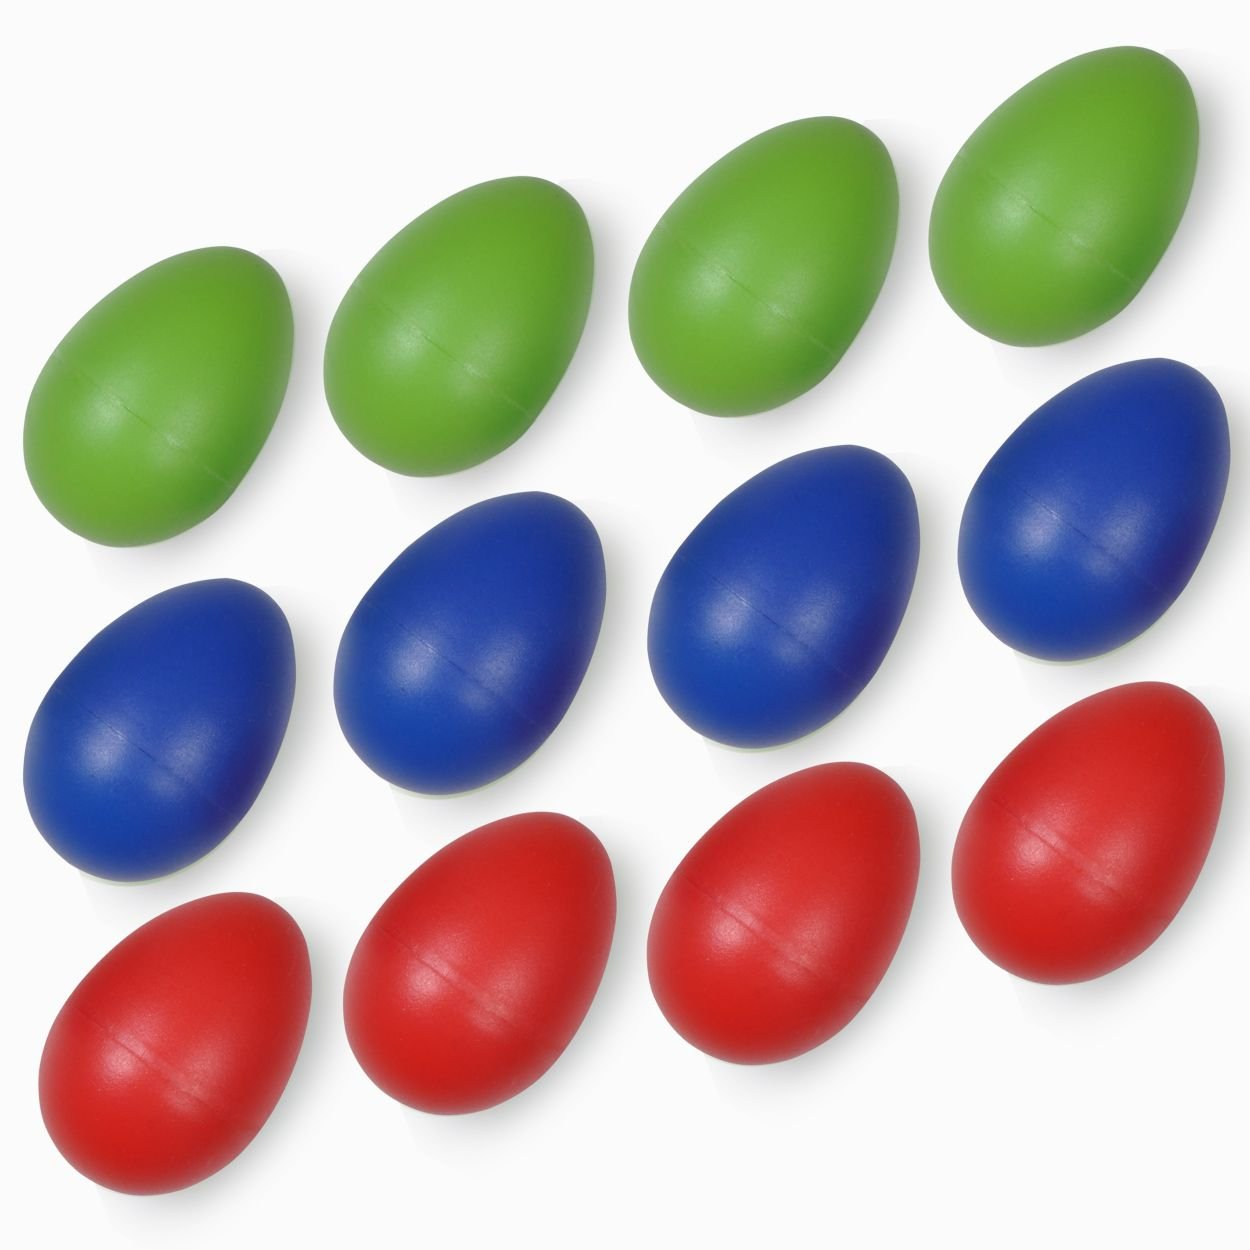 Egg Shakers NO LEAD PELLETS! KID-SAFE BEANS! (1 Dozen, 12 Pack) Durable ABS Plastic Musical Percussion Instrument – BPA-FREE Toy Shaker Rattle Maracas For Kids, Children, Toddlers, Babies, Infants NextEgg